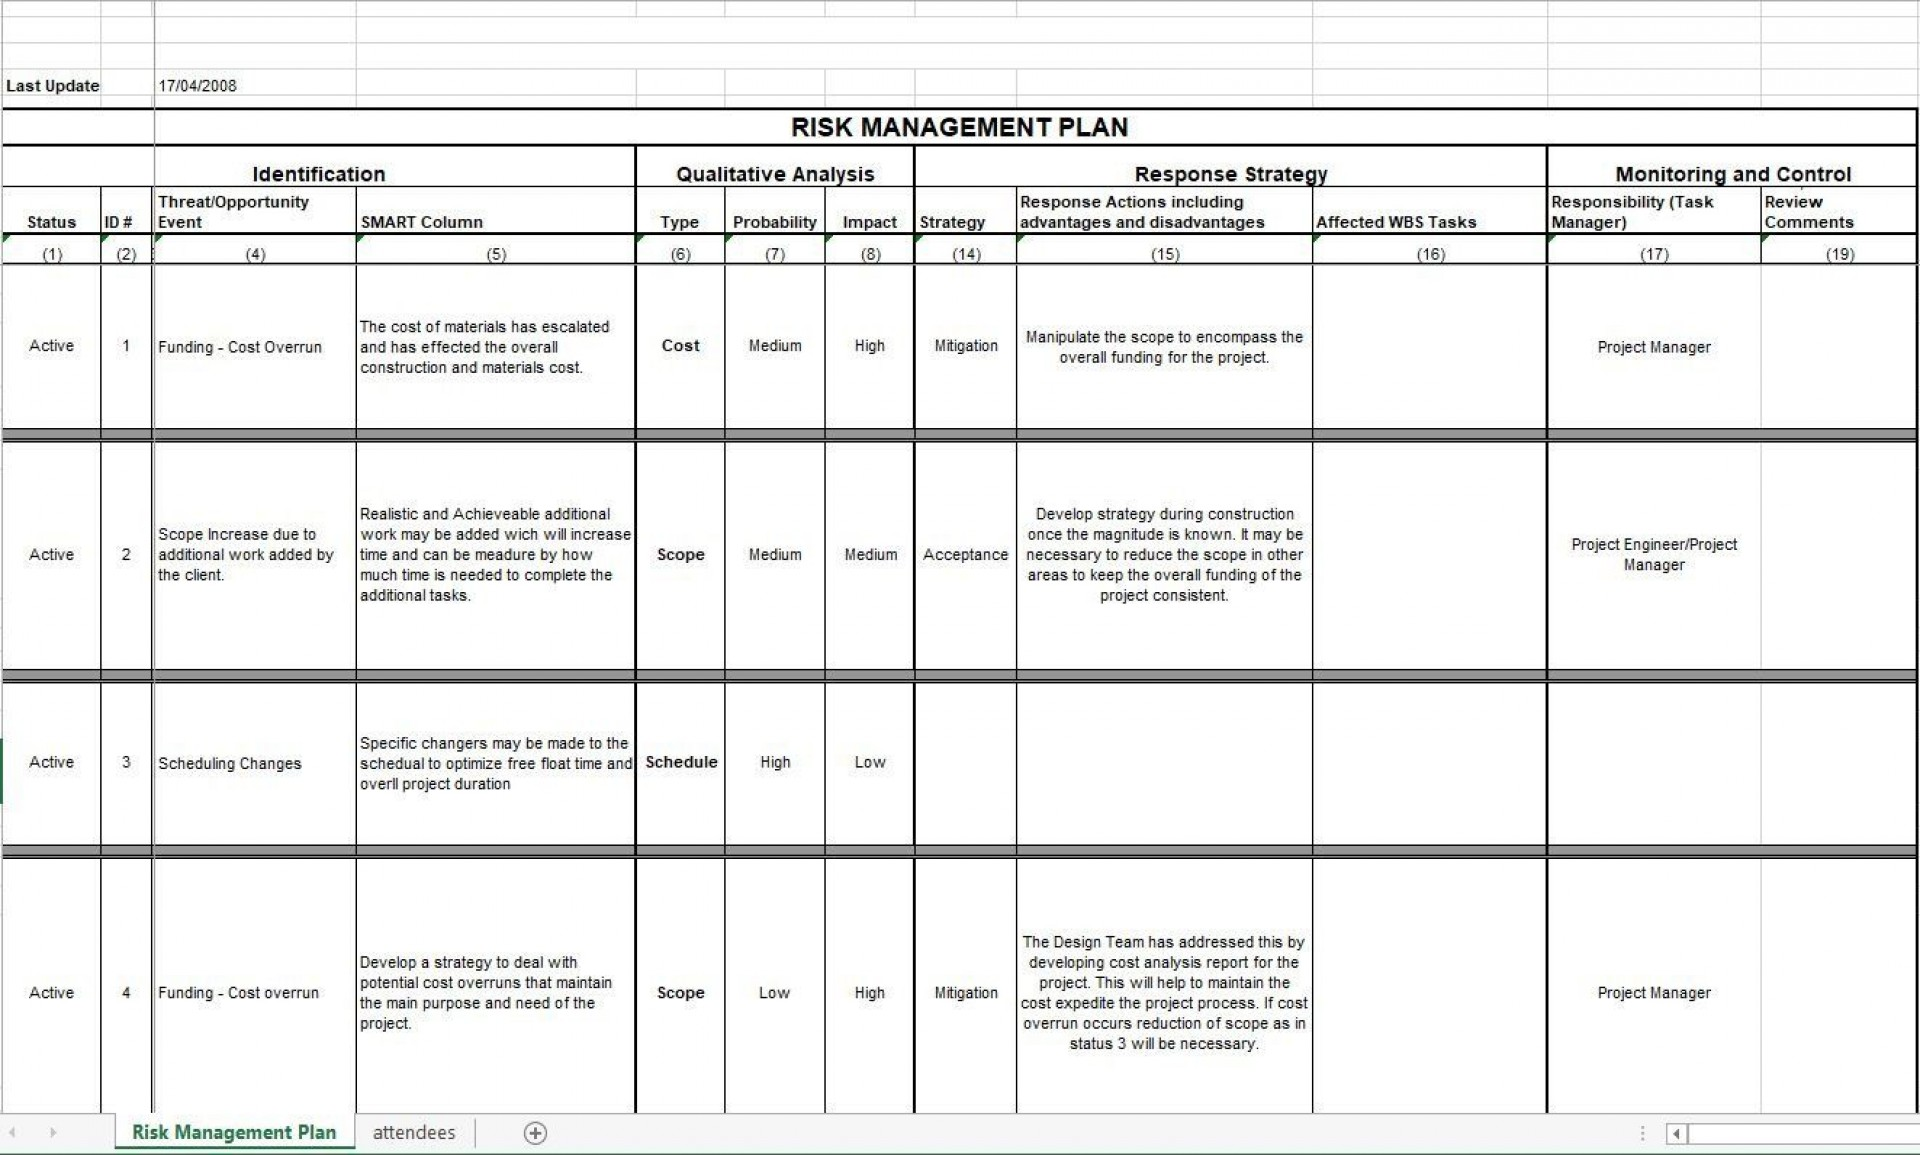 006 Wonderful Project Risk Management Plan Template Excel Free High Def 1920